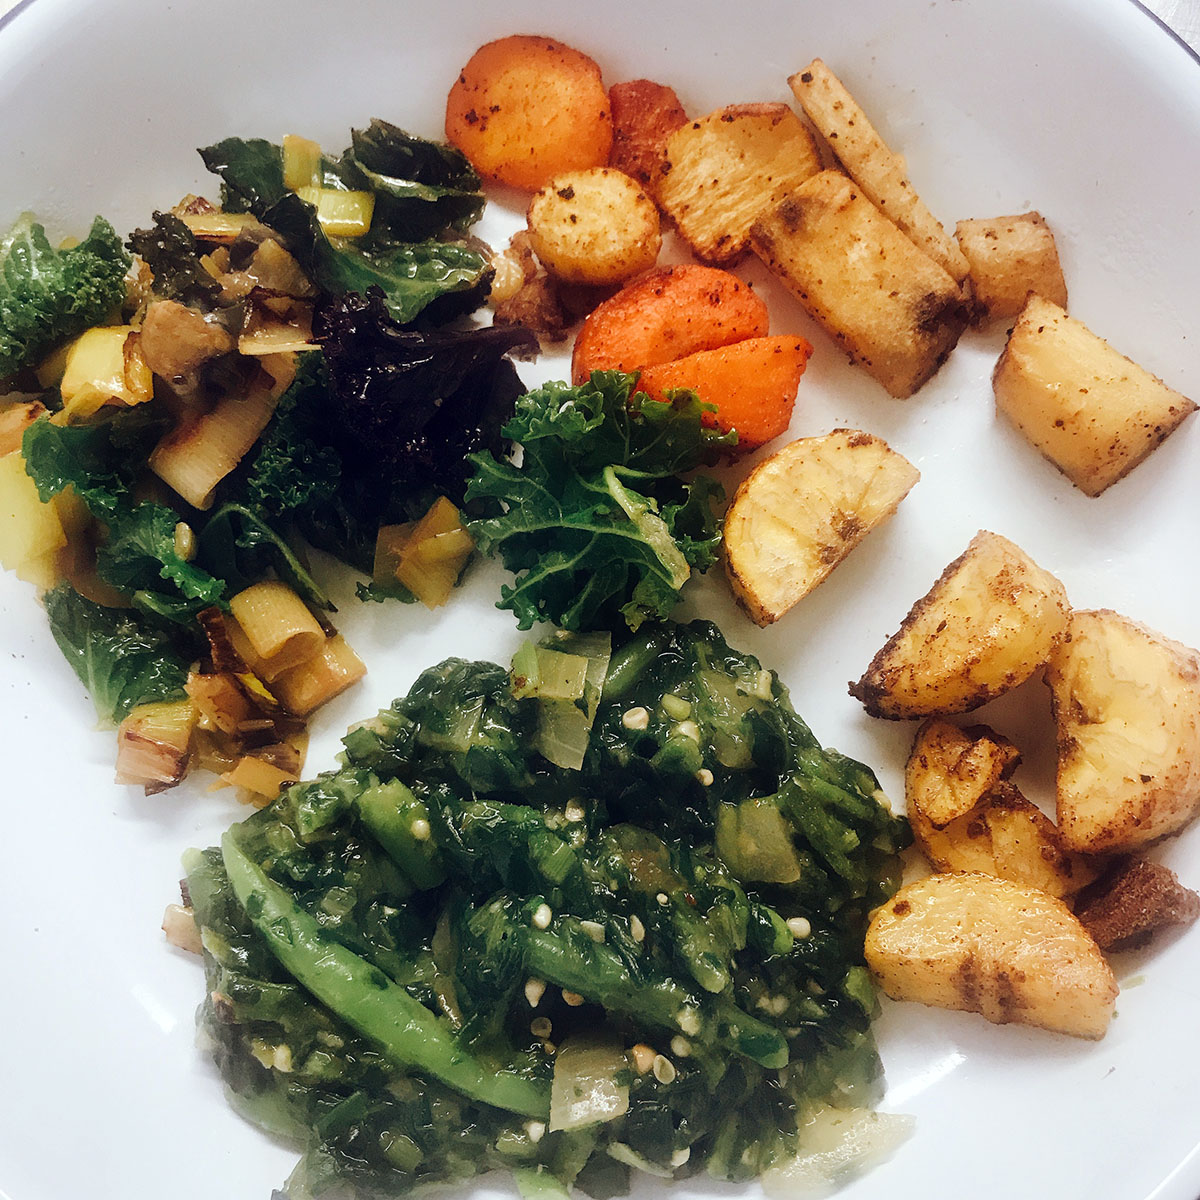 Okra stew on white plate with kale, roasted veg and plantain